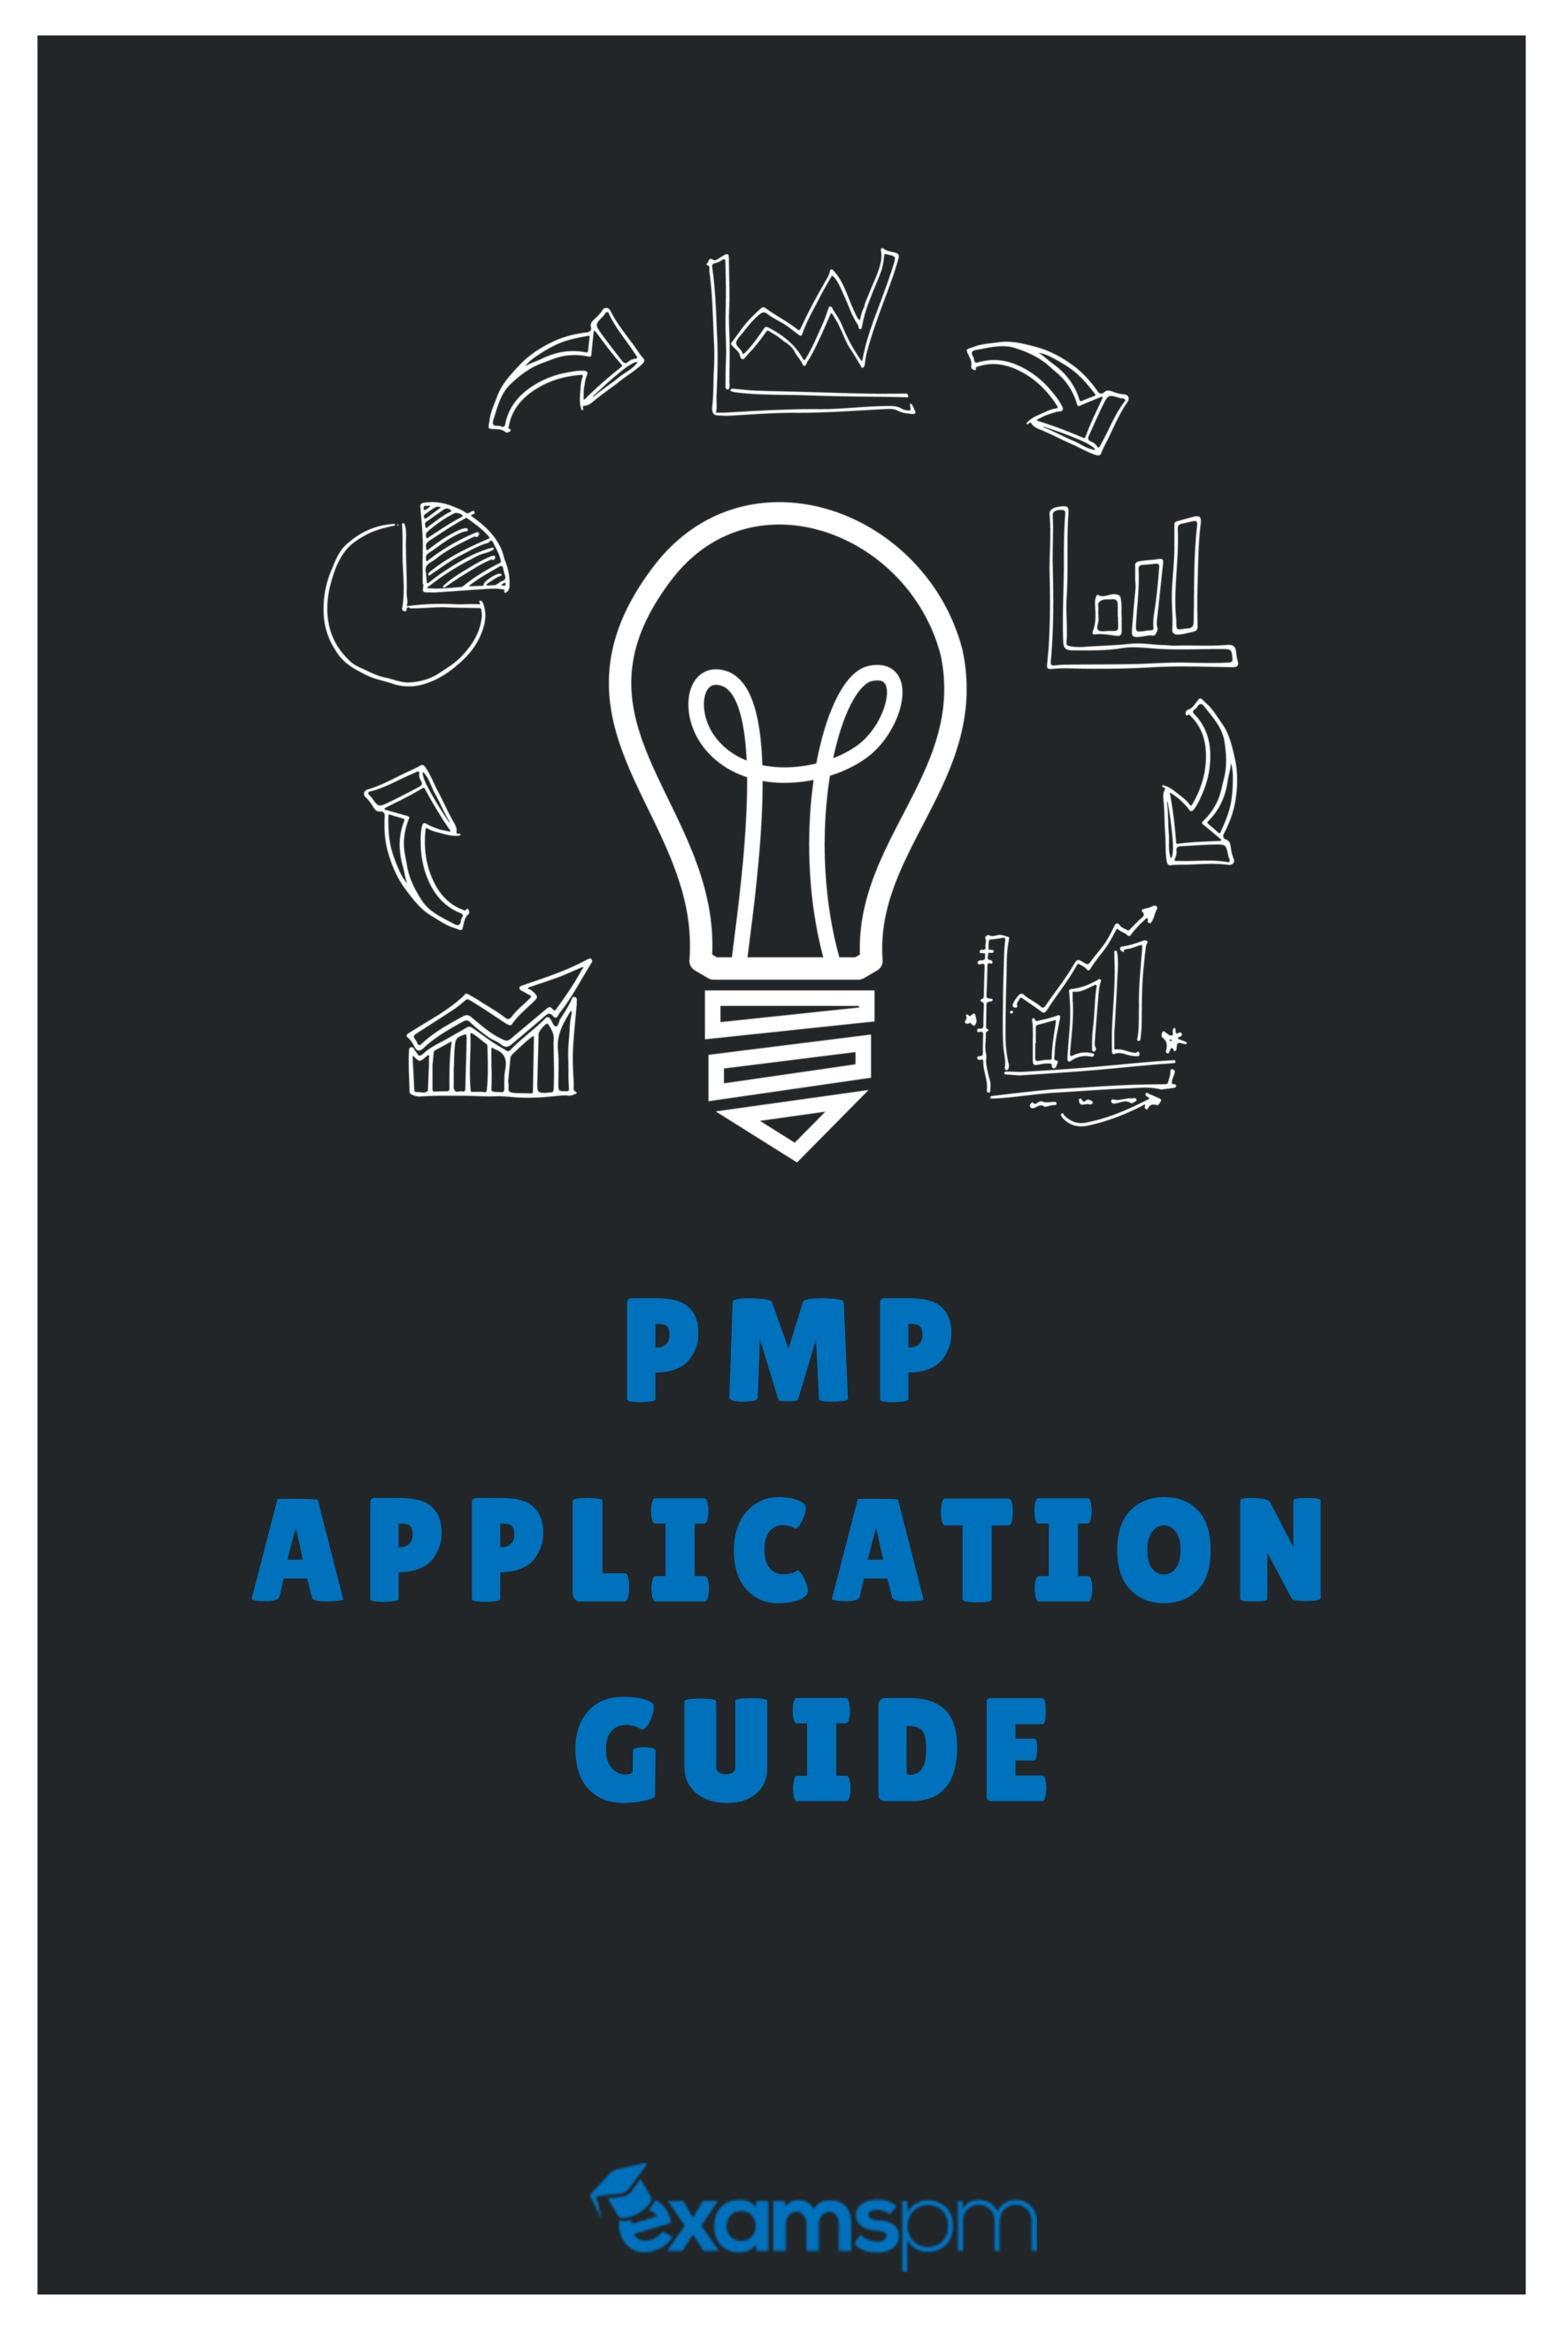 PMP Application Process Guide